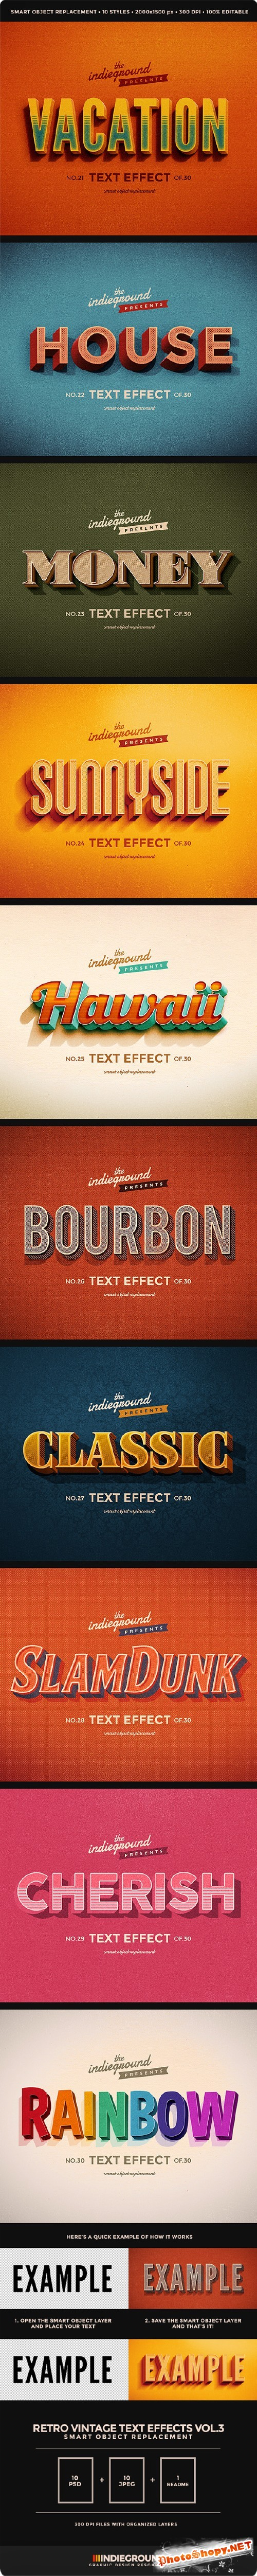 Retro Vintage Text Effects Vol. 3 - Graphicriver 10457336